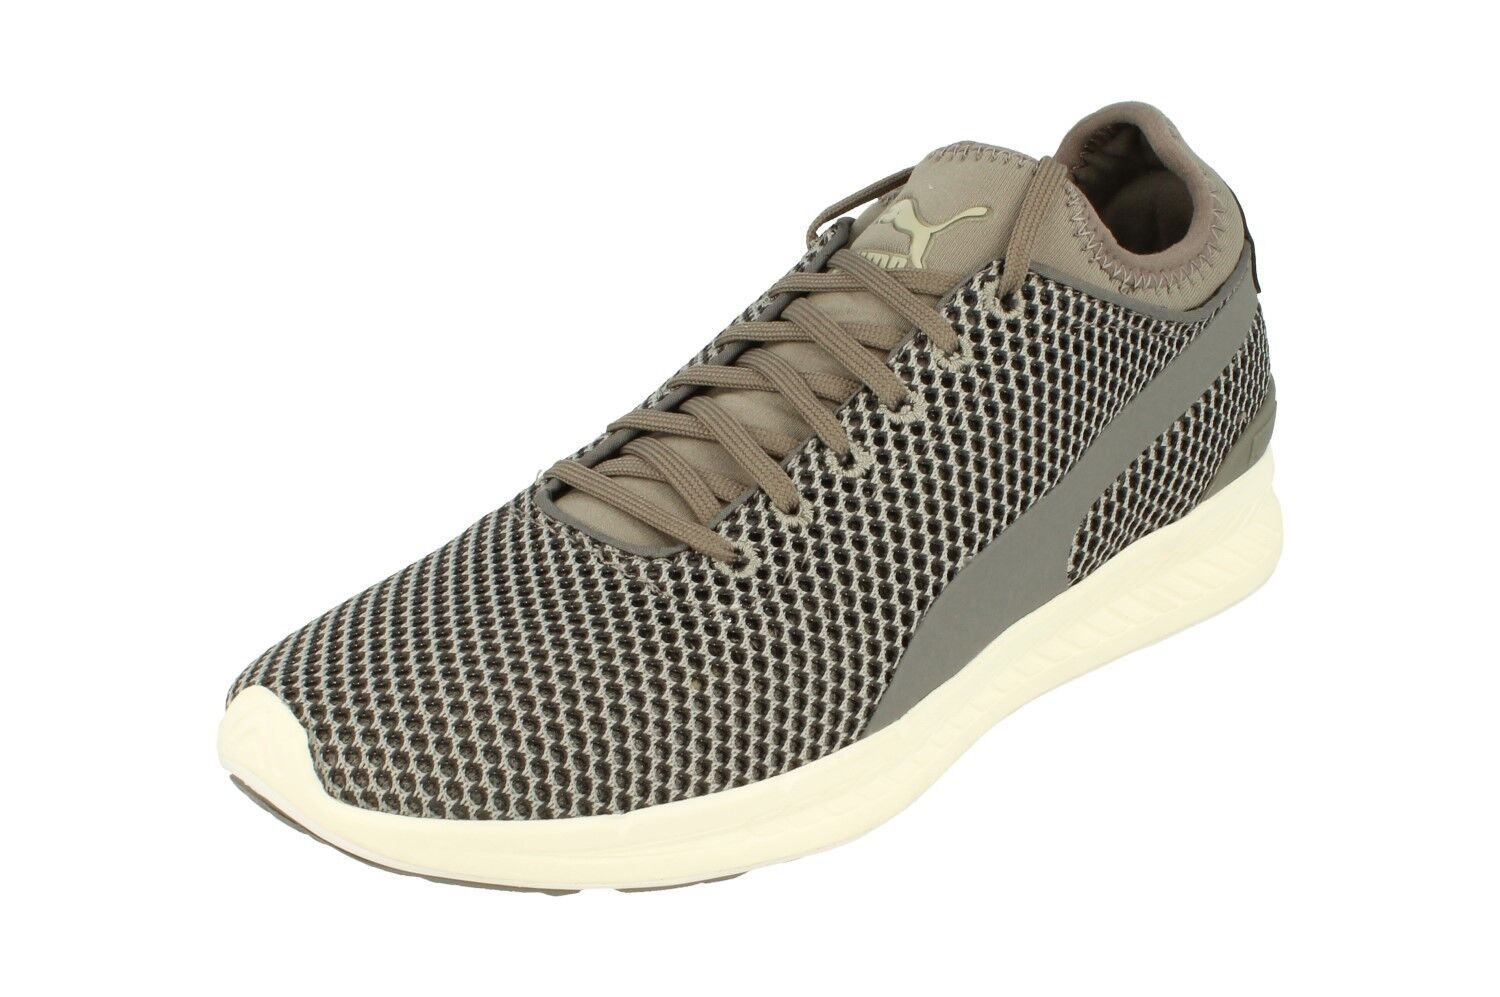 Puma Ignite Sock Knit Mens Running Trainers 361060 Sneakers Shoes 05